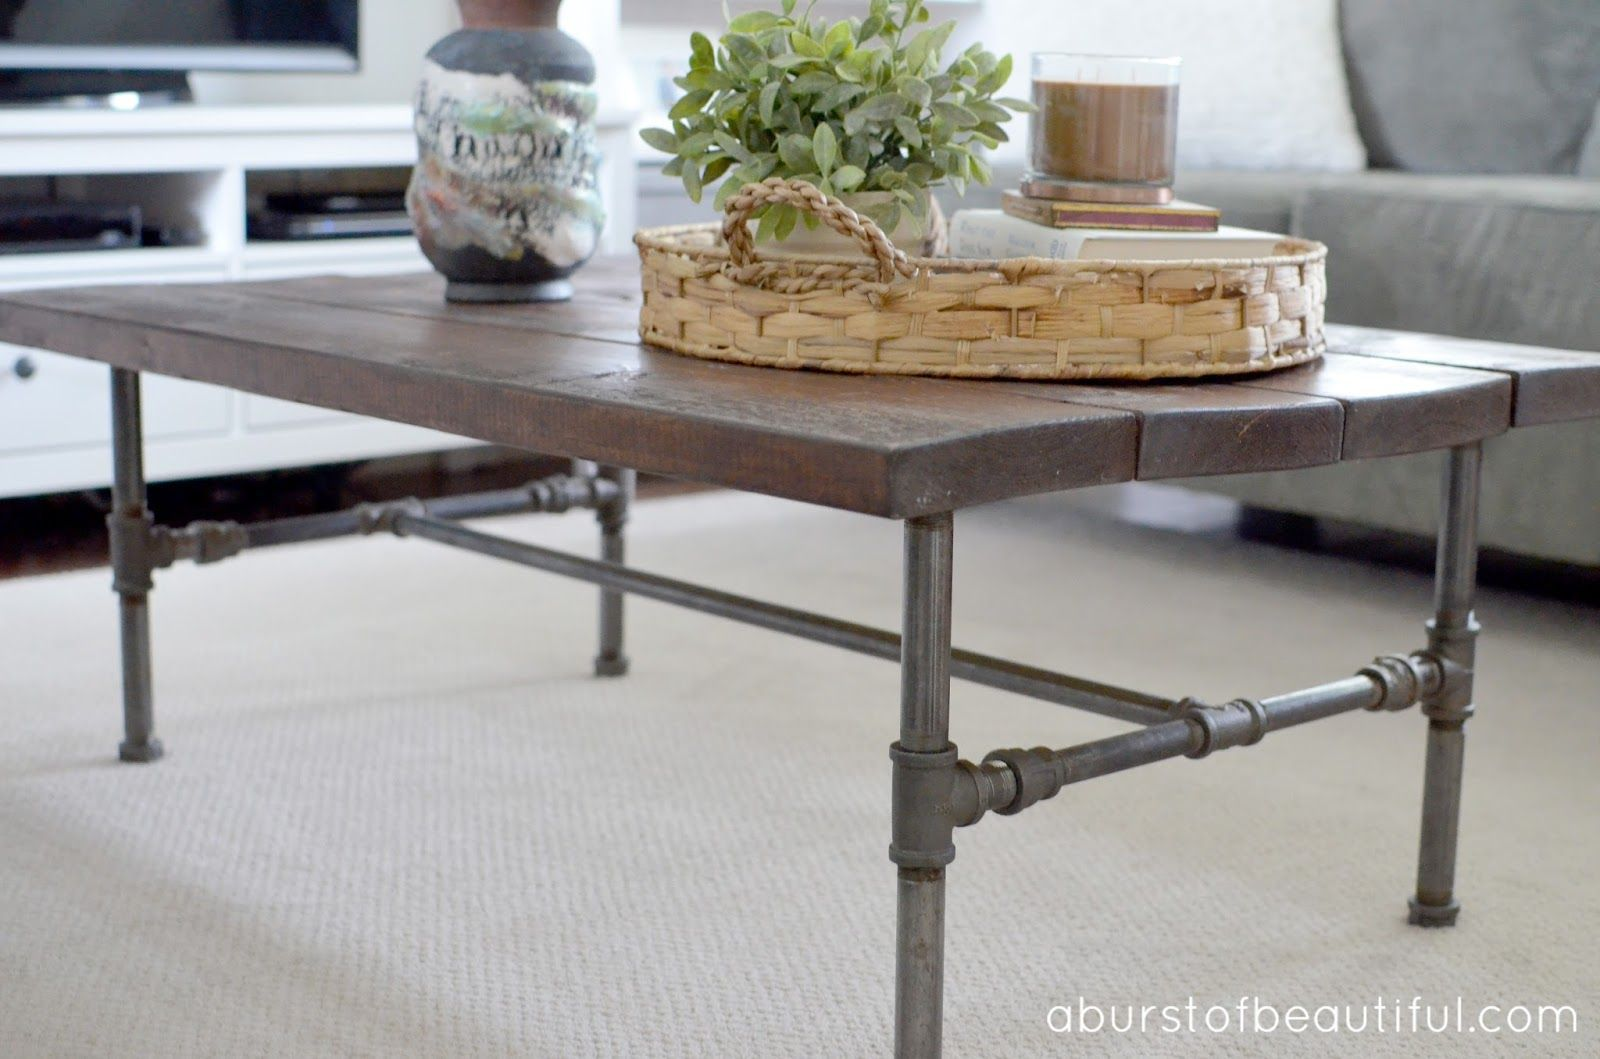 Diy Rustic Industrial Pipe Coffee Table A Creative Home Diy